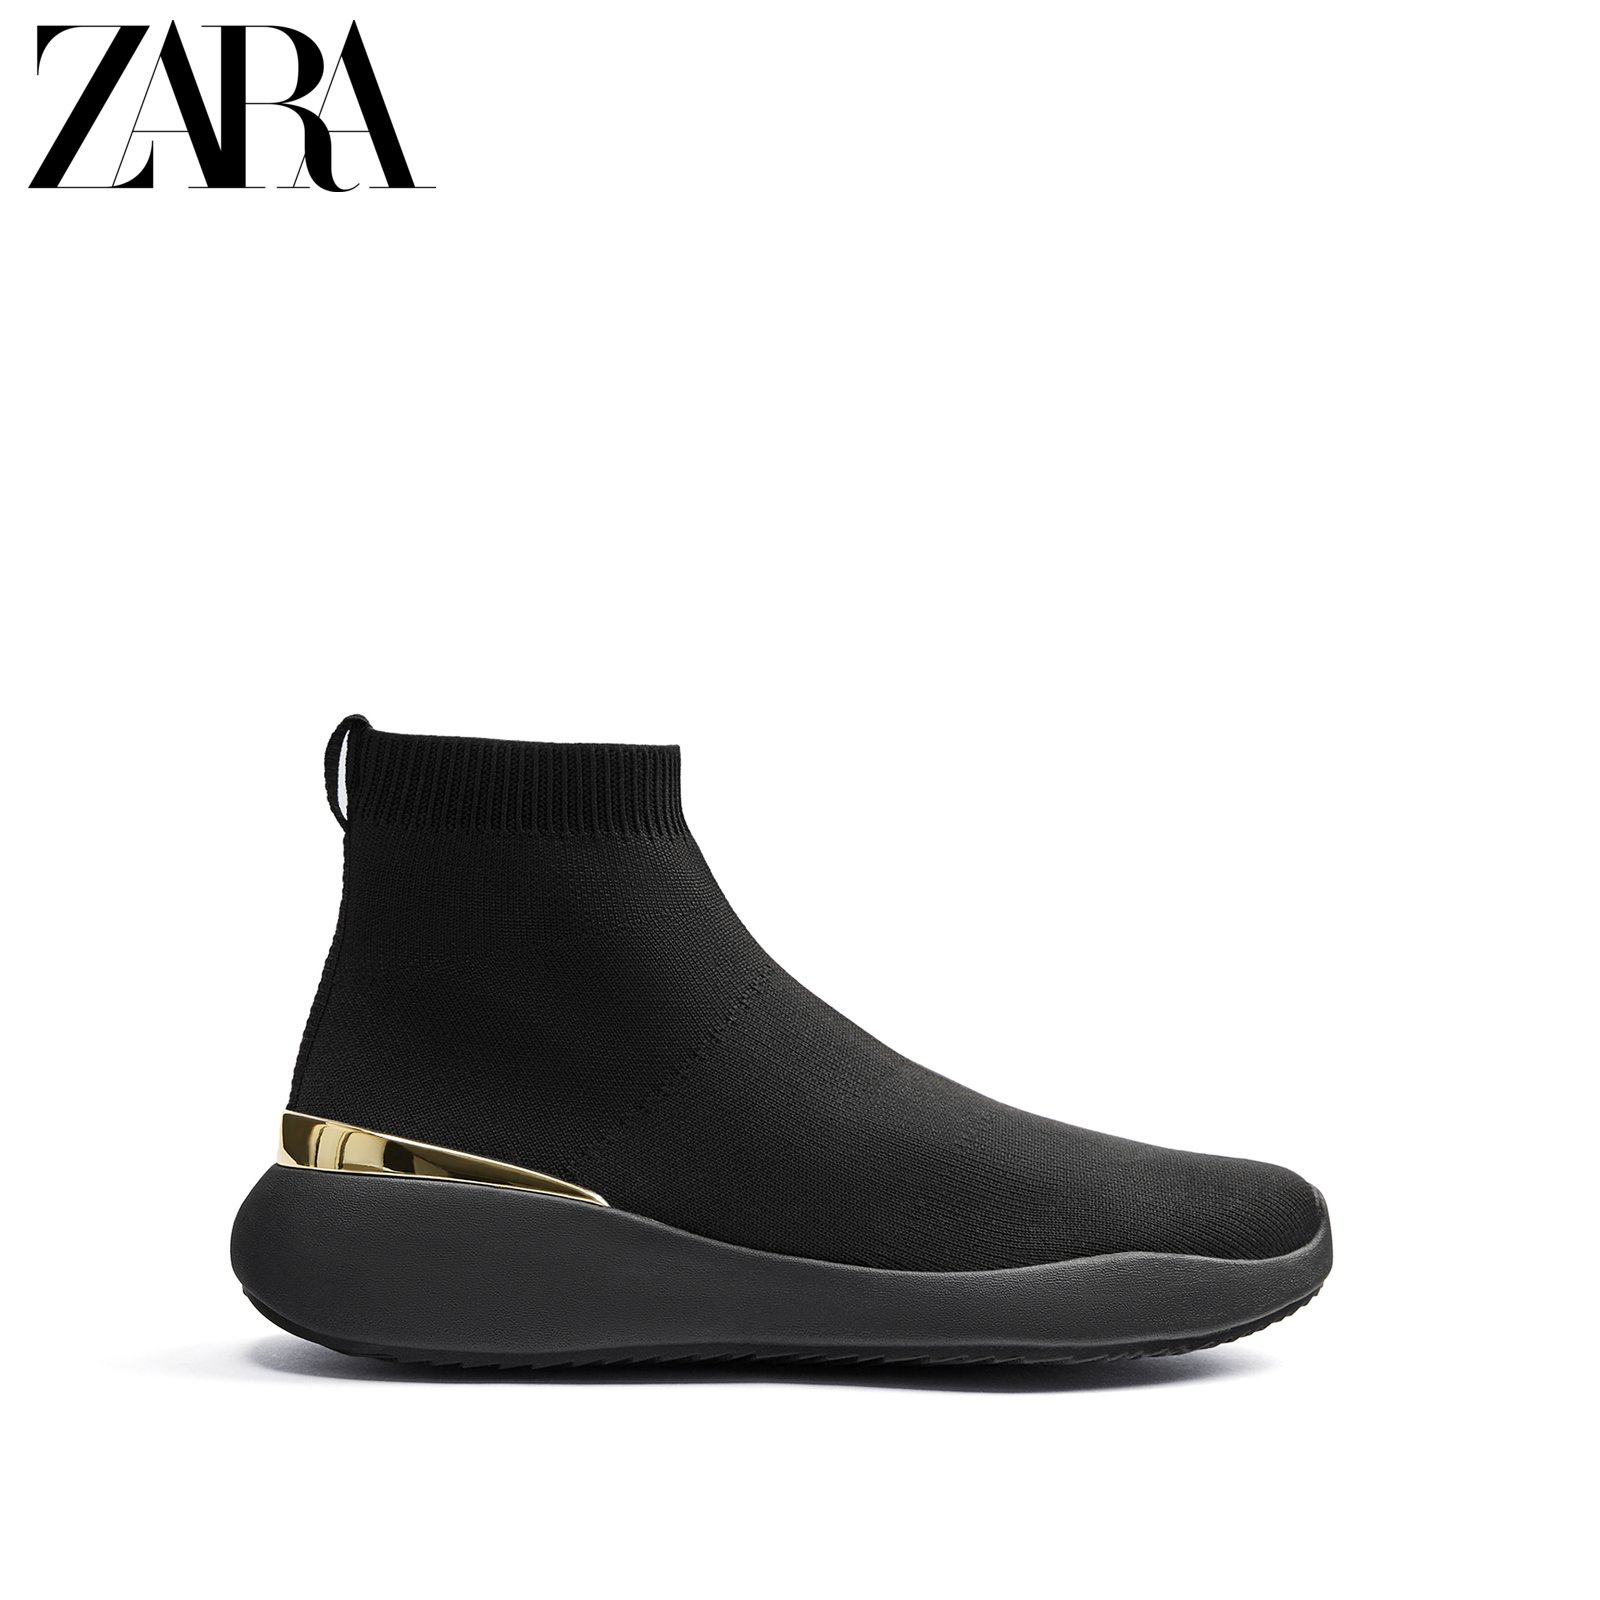 Zara new men's shoes black embellished thick-soled breathable socks sneakers 12102620040